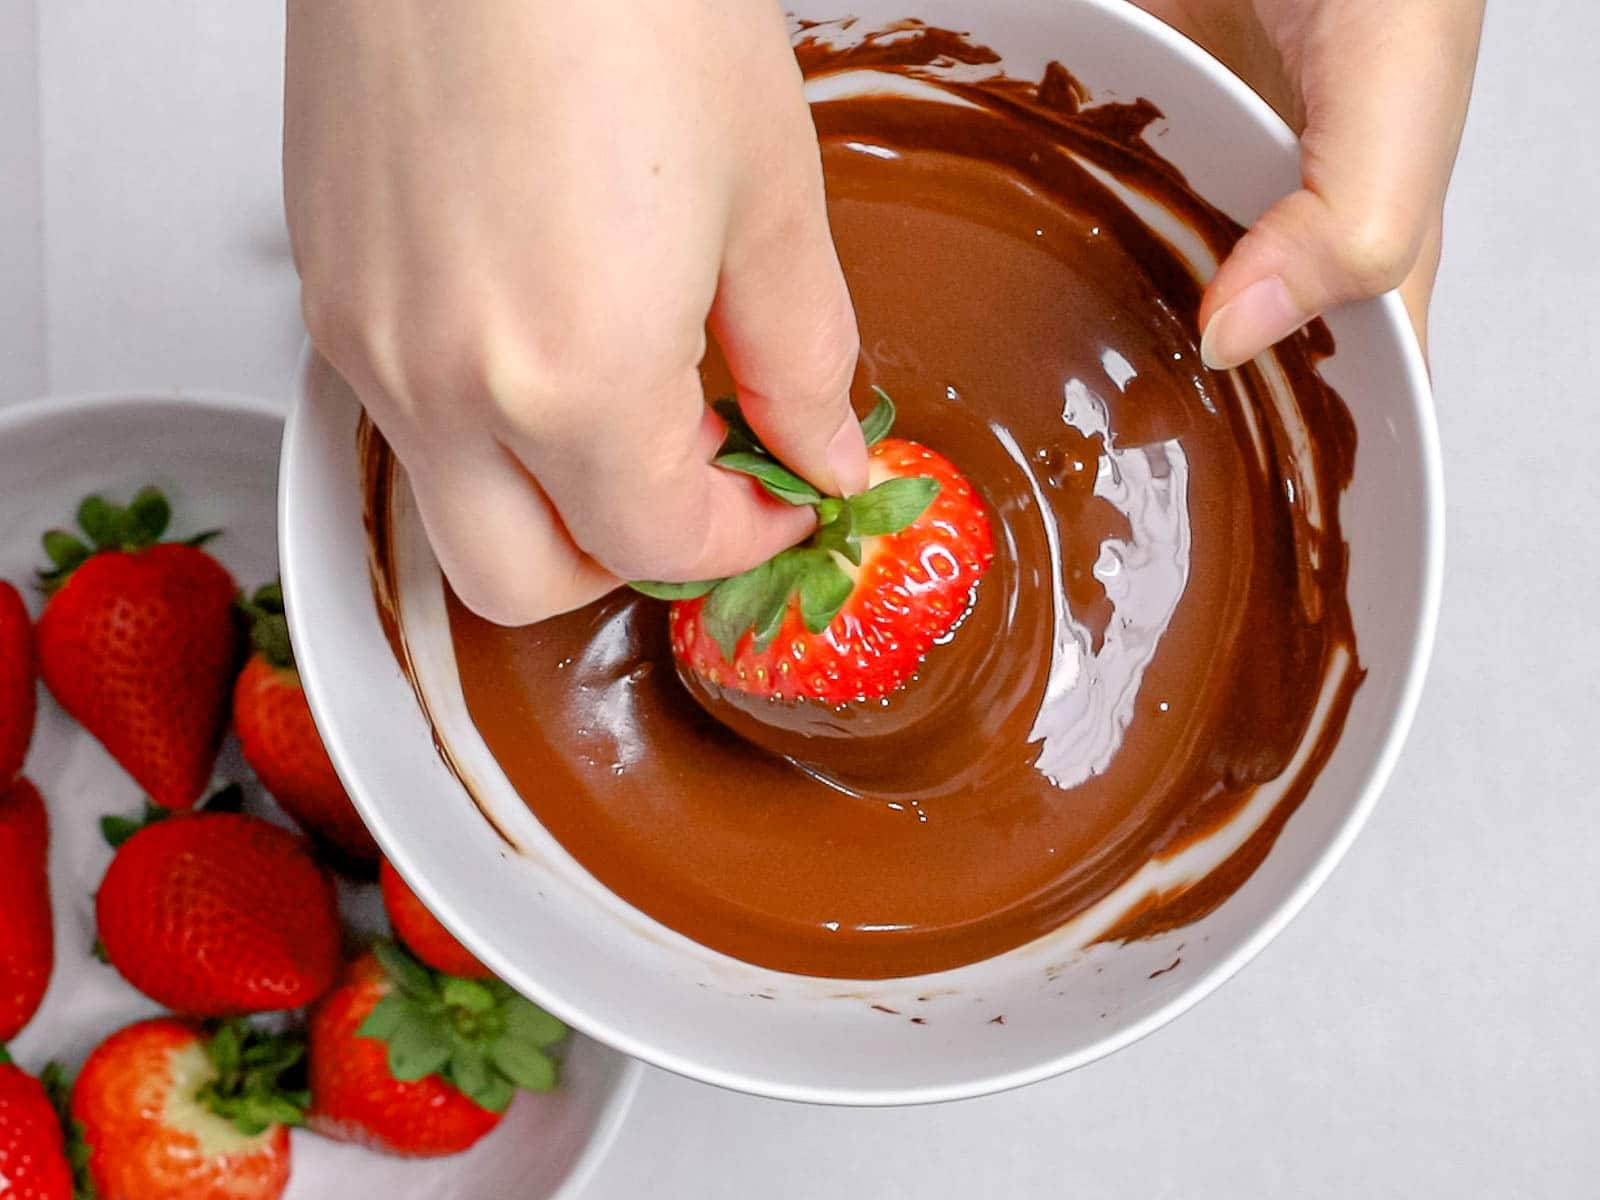 hand dipping a strawberry in melted chocolate